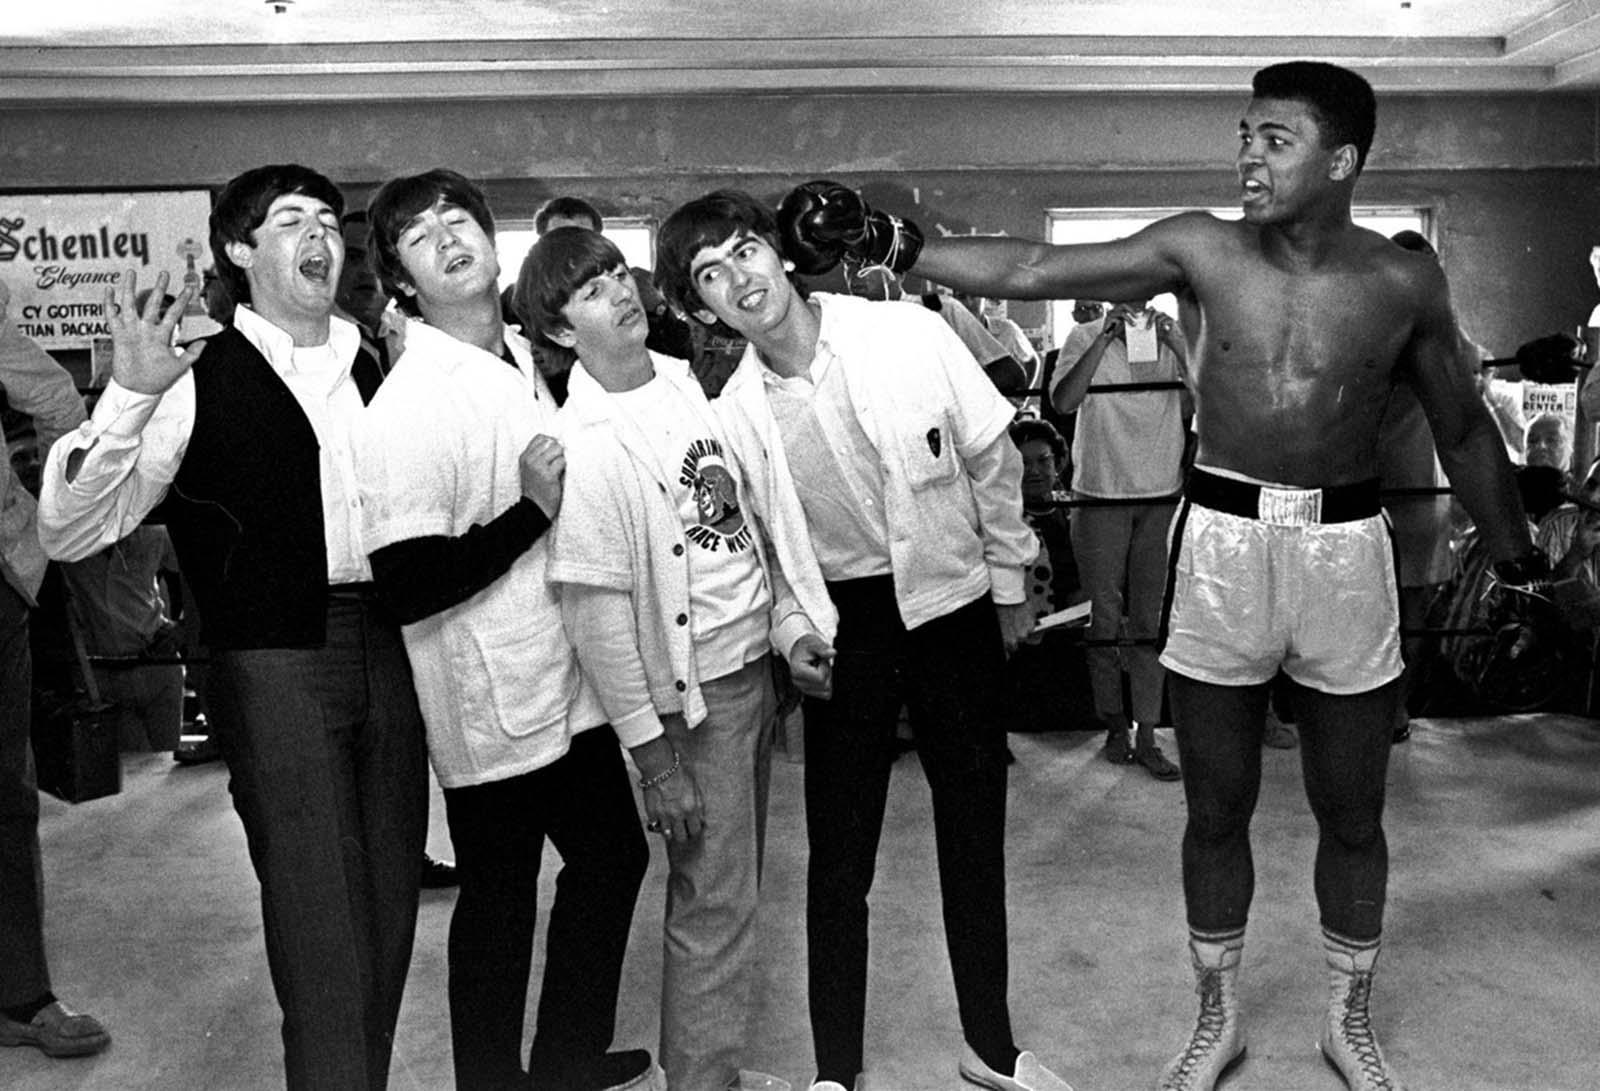 The Beatles take a fake blow from Cassius Clay, who later changed his name to Muhammad Ali, while visiting the heavyweight contender at his training camp in Miami Beach, Florida, on February 18, 1964.